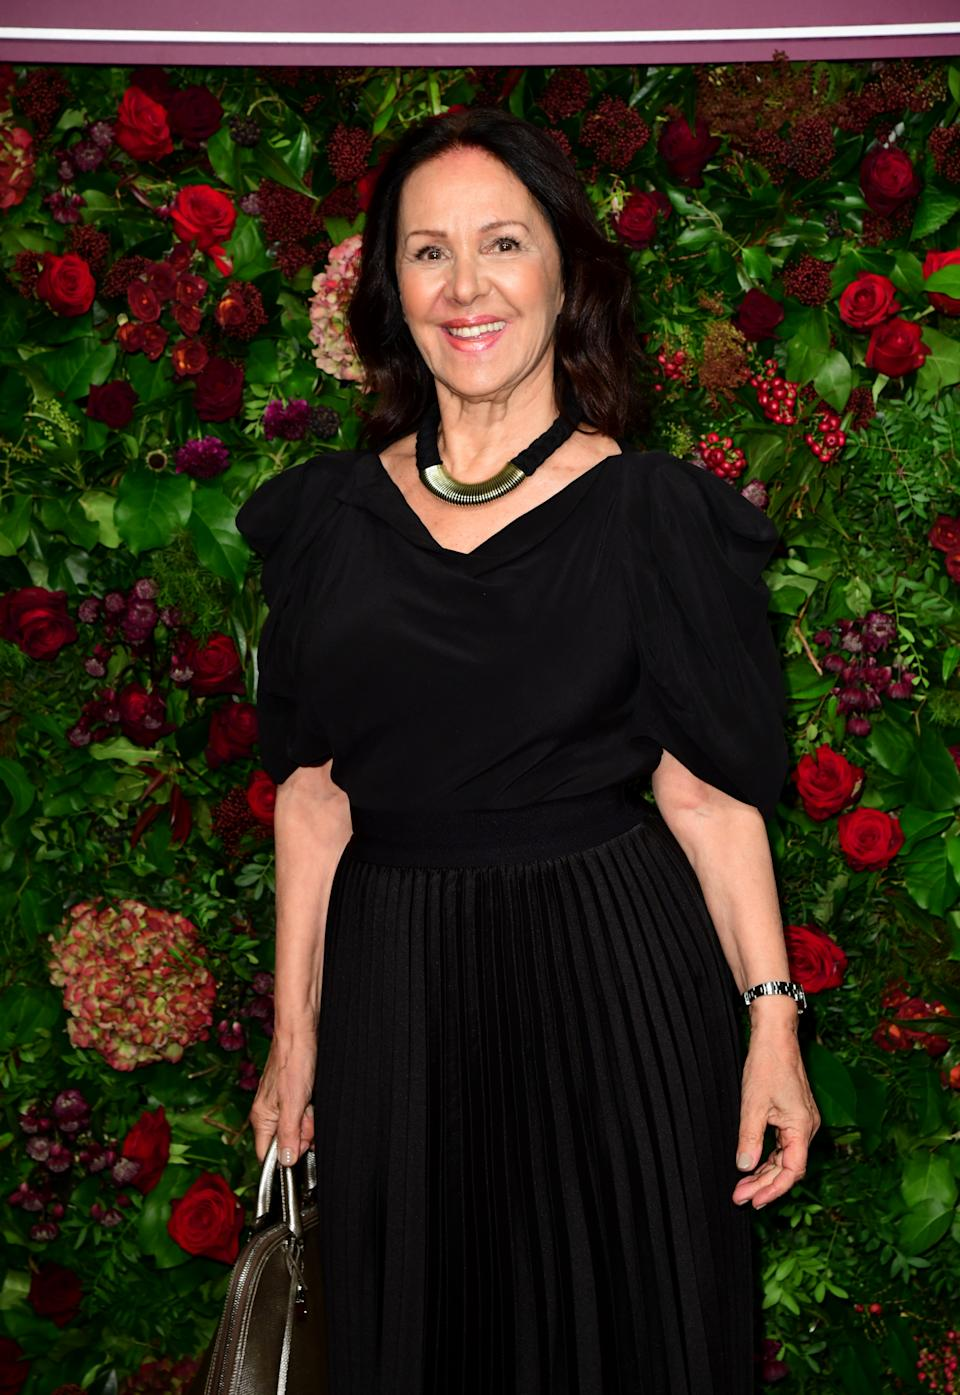 Arlene Phillips attending the 65th Evening Standard Theatre Awards at the London Coliseum, London. (Photo by Ian West/PA Images via Getty Images)